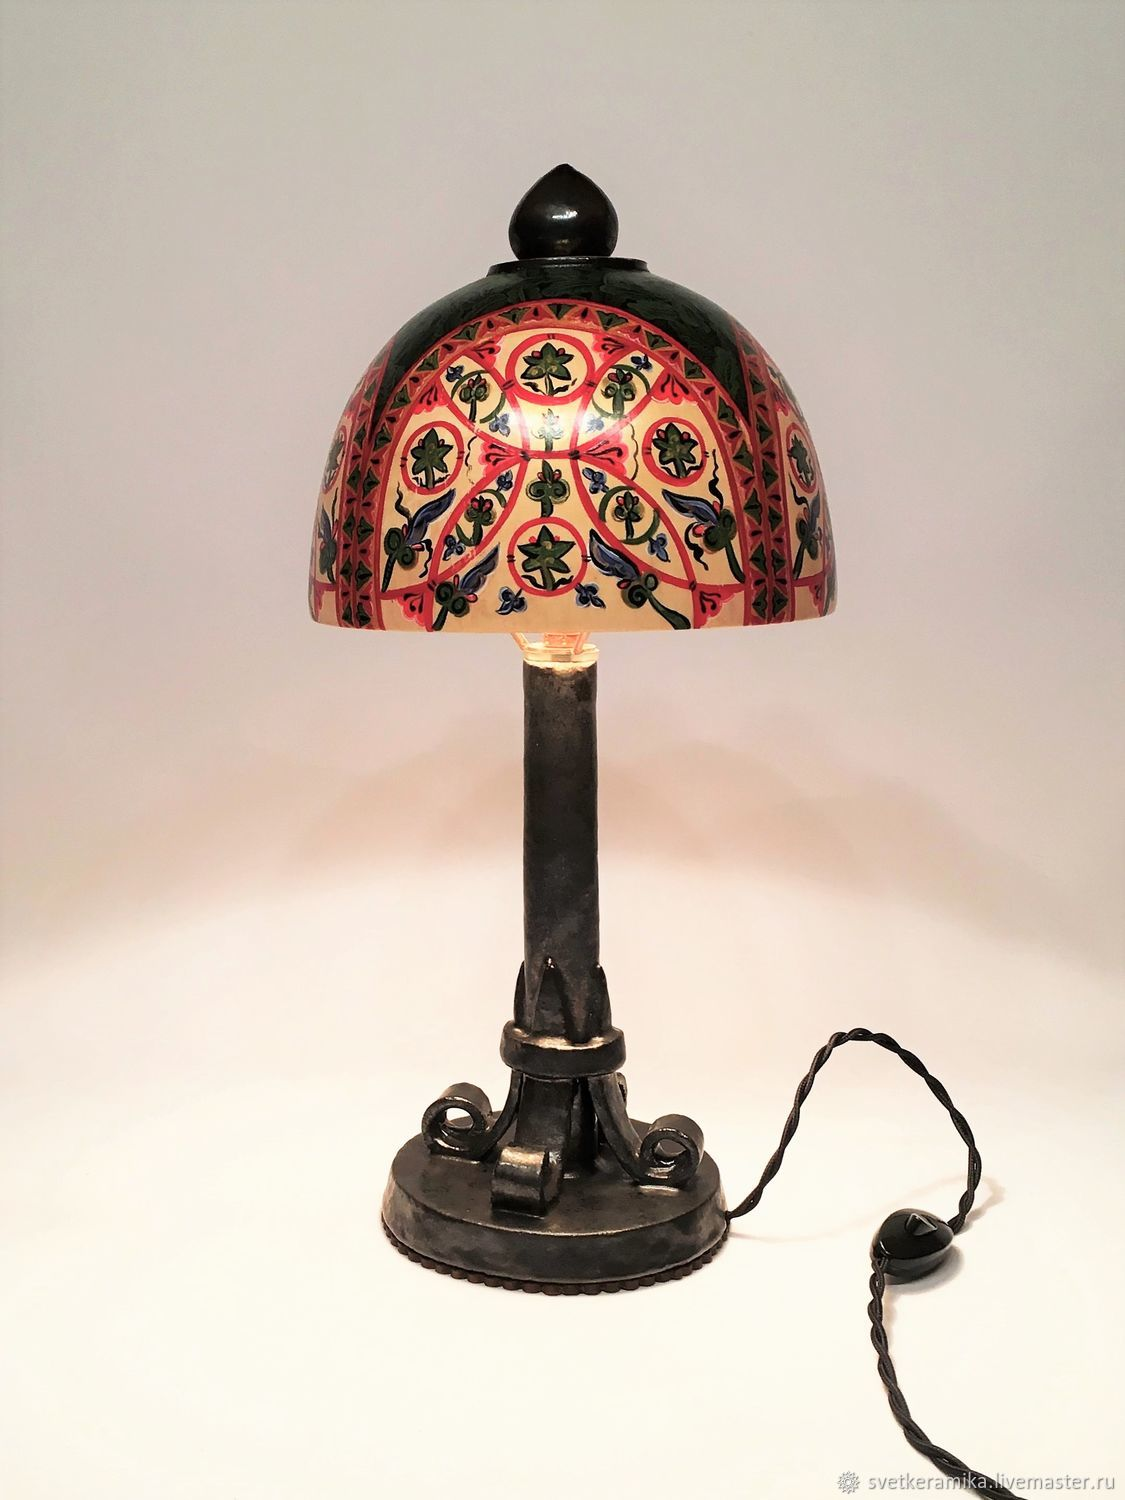 Table lamp made of wood, ceramics and copper painted in the Russian style, Table lamps, Moscow,  Фото №1